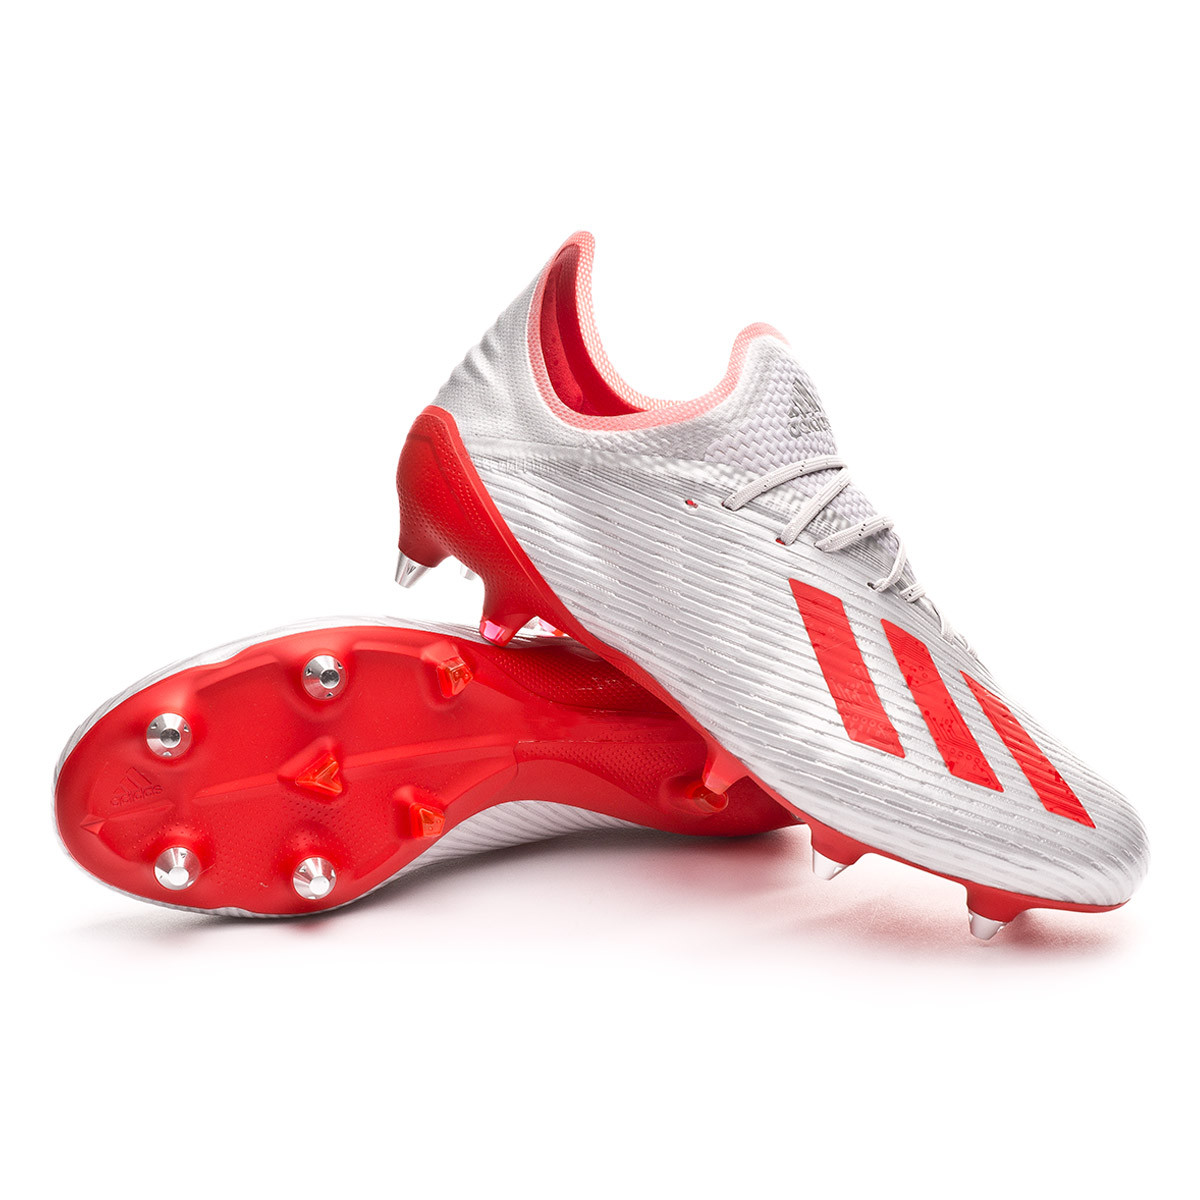 Best Selling Red White Silver Adidas Football Shoes Adidas